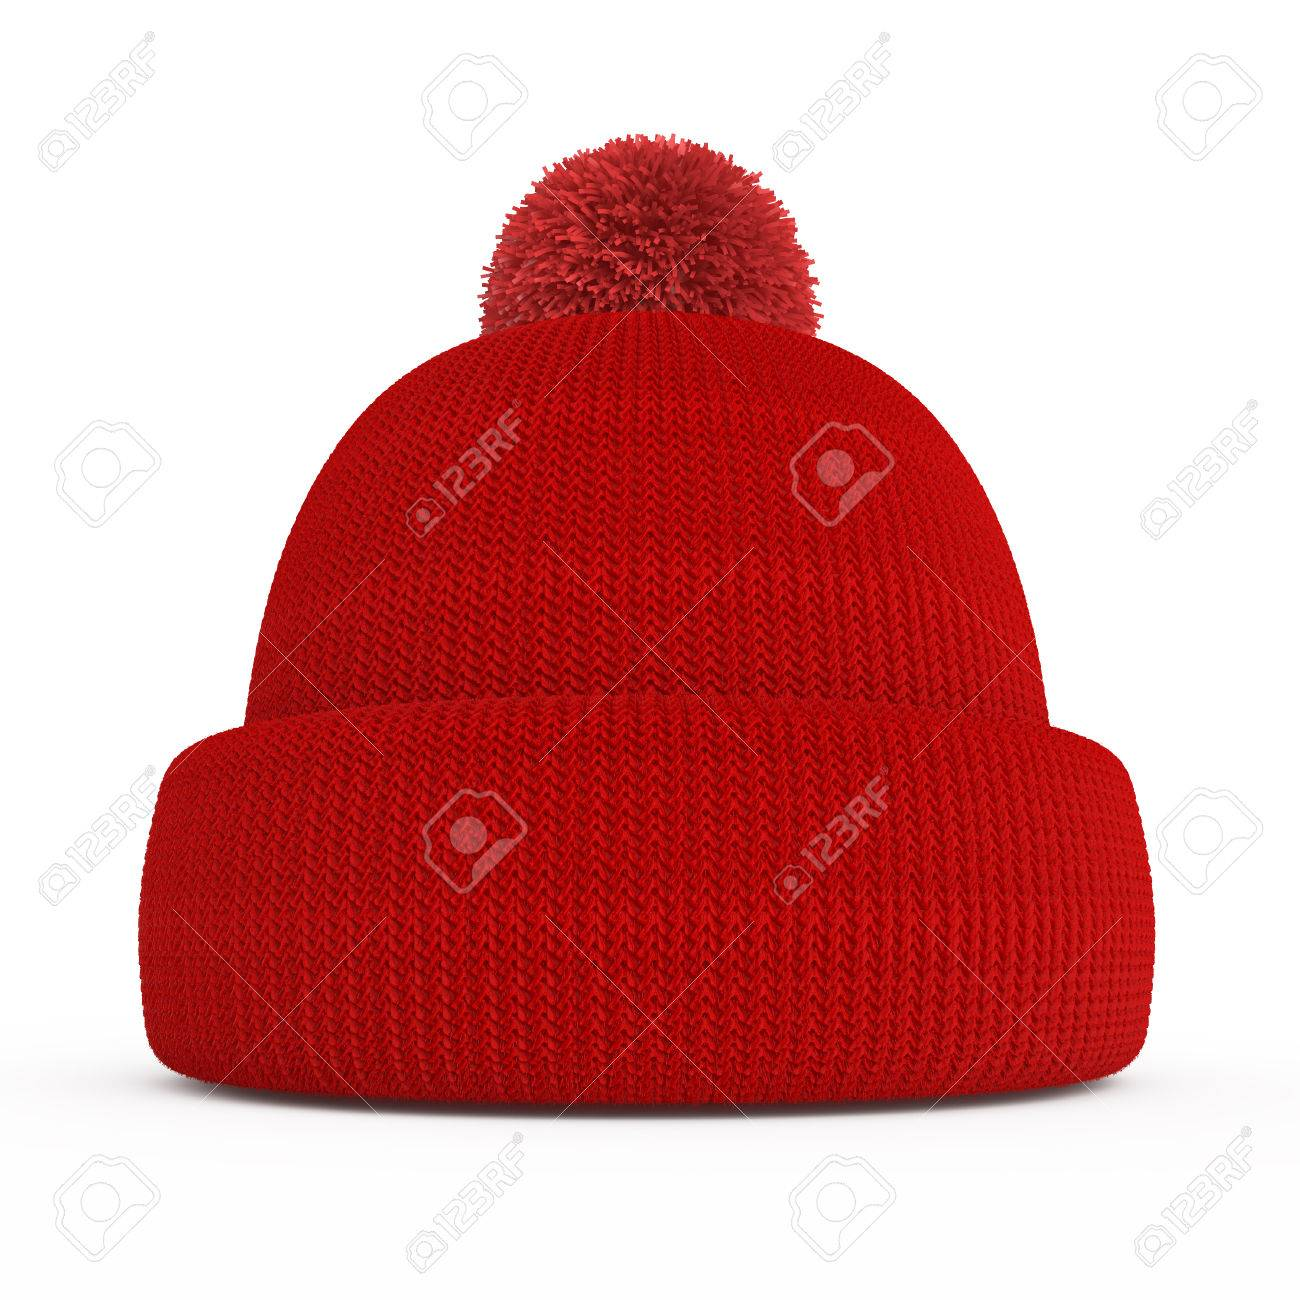 Red knitted winter hat isolated on a white background Stock Photo - 24230685 c2ab197eb9e